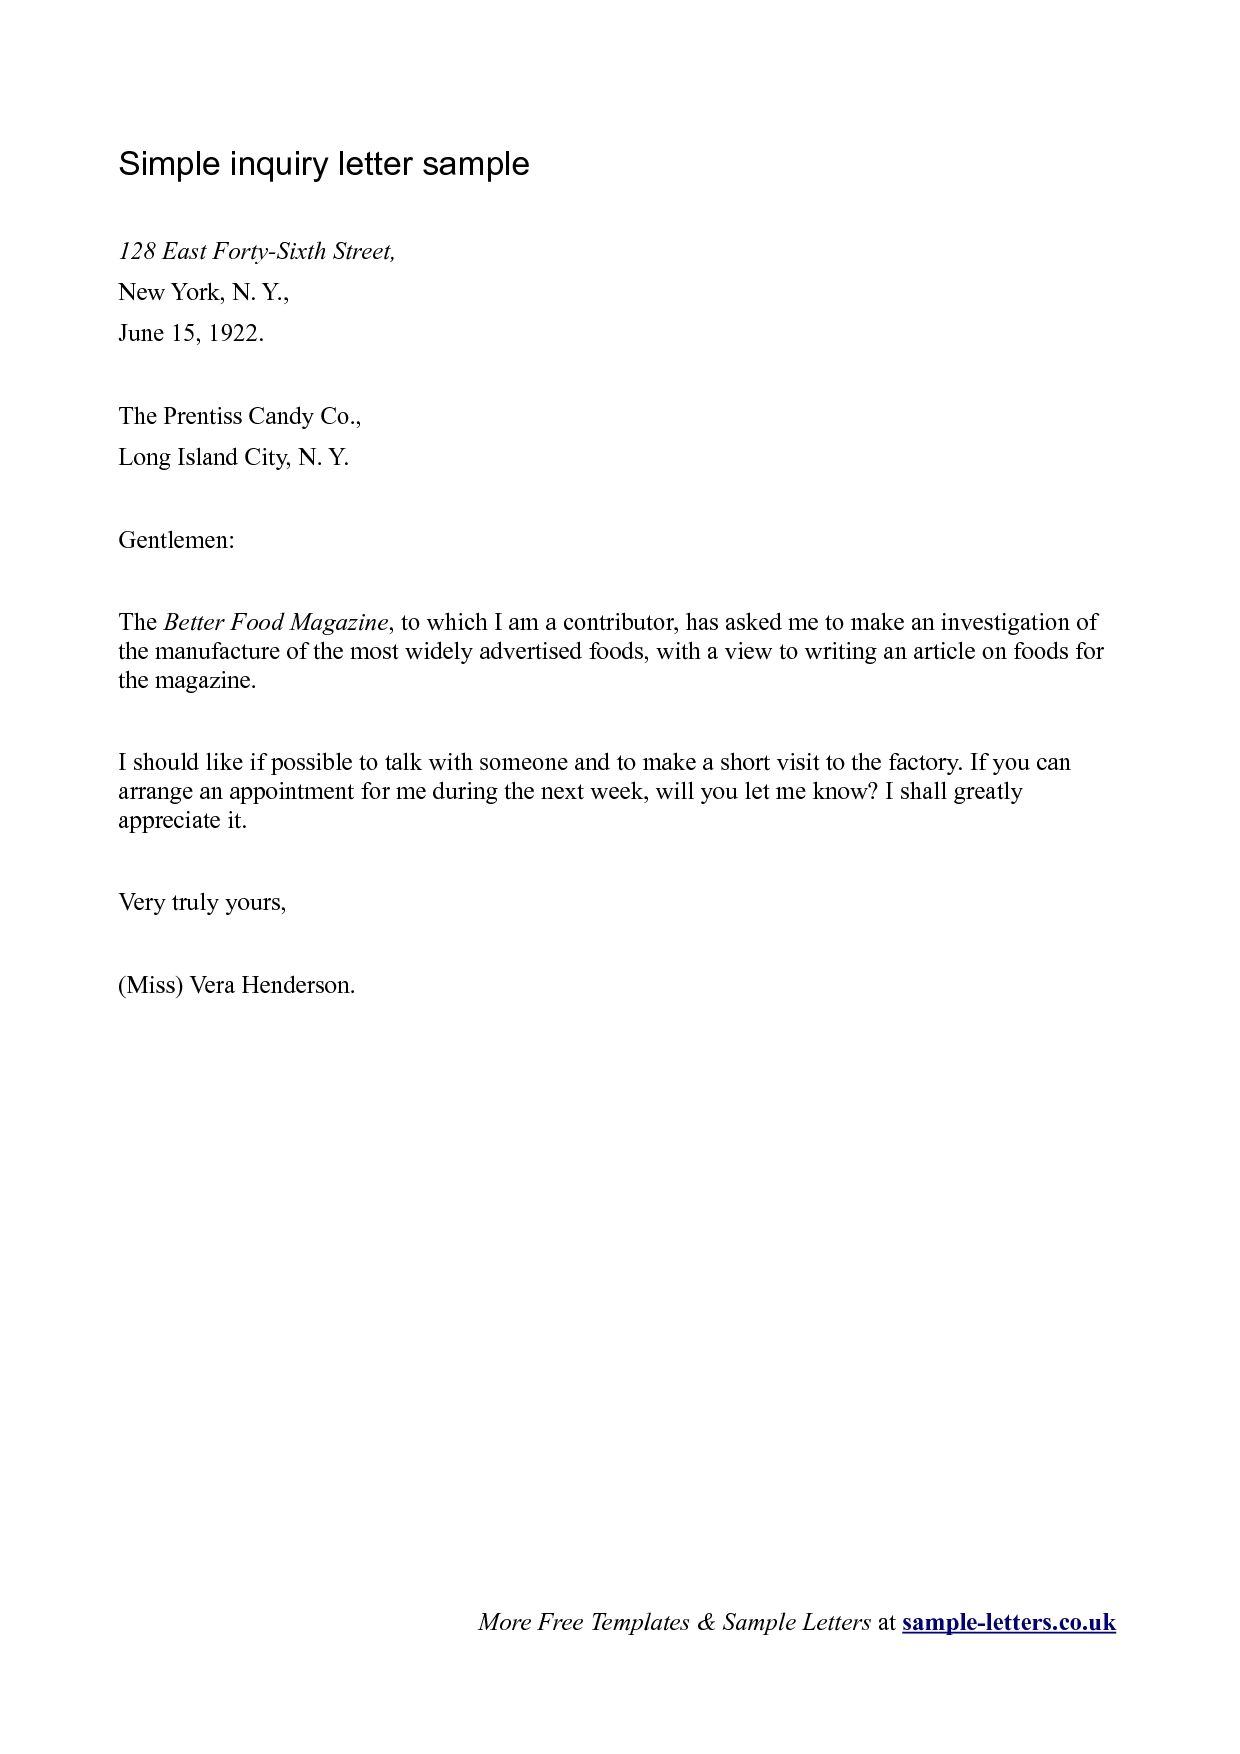 Business letter of inquiry sample the letter sample reading and business letter of inquiry sample the letter sample spiritdancerdesigns Images